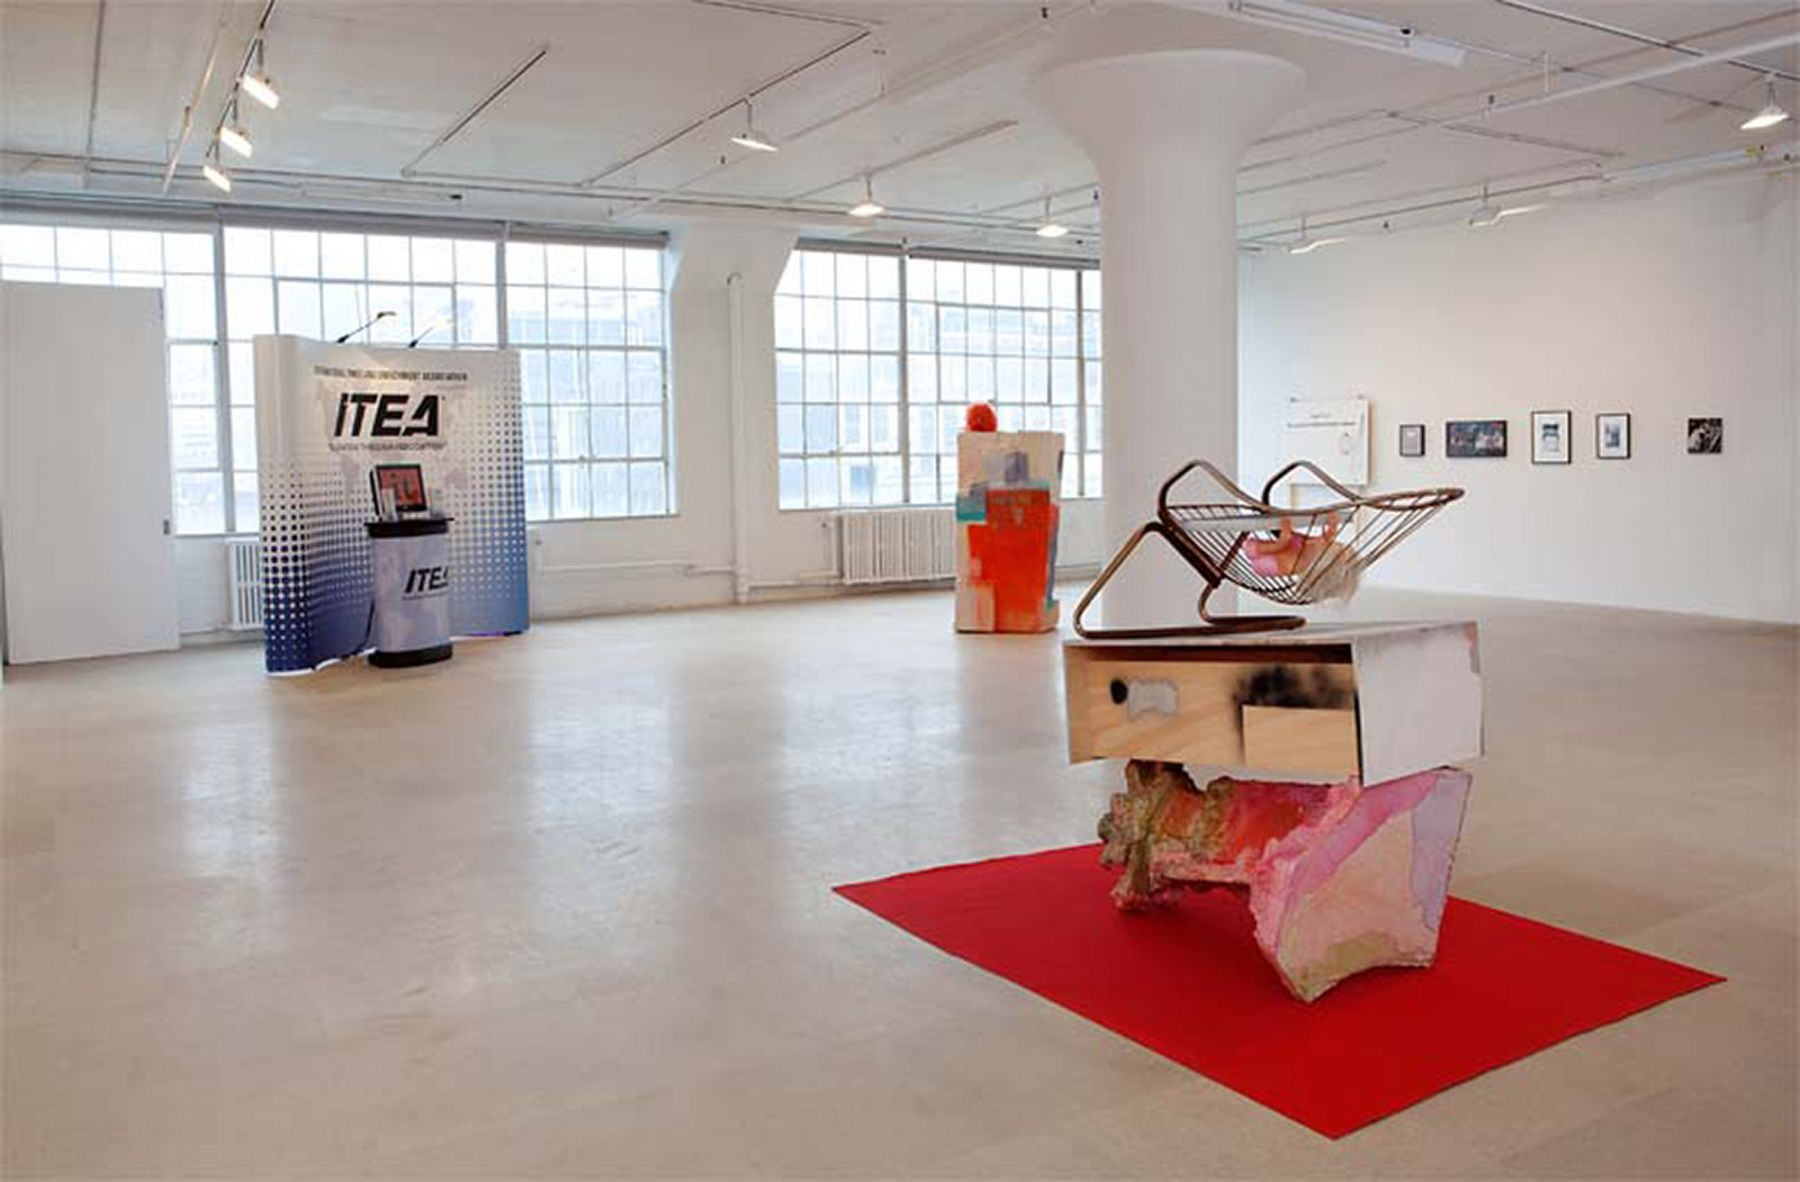 Installation view, ENTERTAINMENT, Greene Naftali, New York, 2012